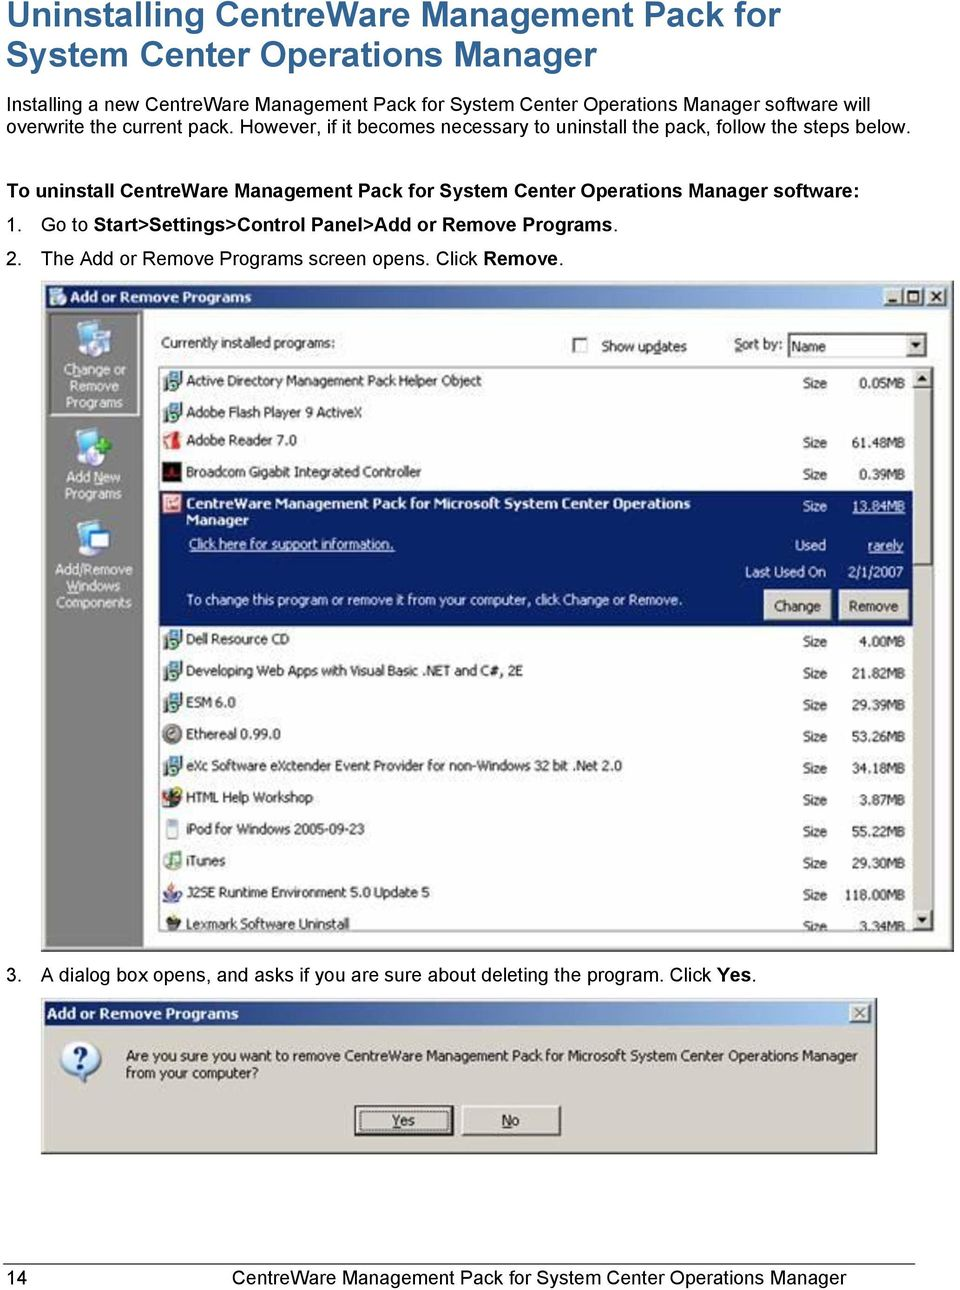 To uninstall CentreWare Management Pack for System Center Operations Manager software: 1. Go to Start>Settings>Control Panel>Add or Remove Programs. 2.